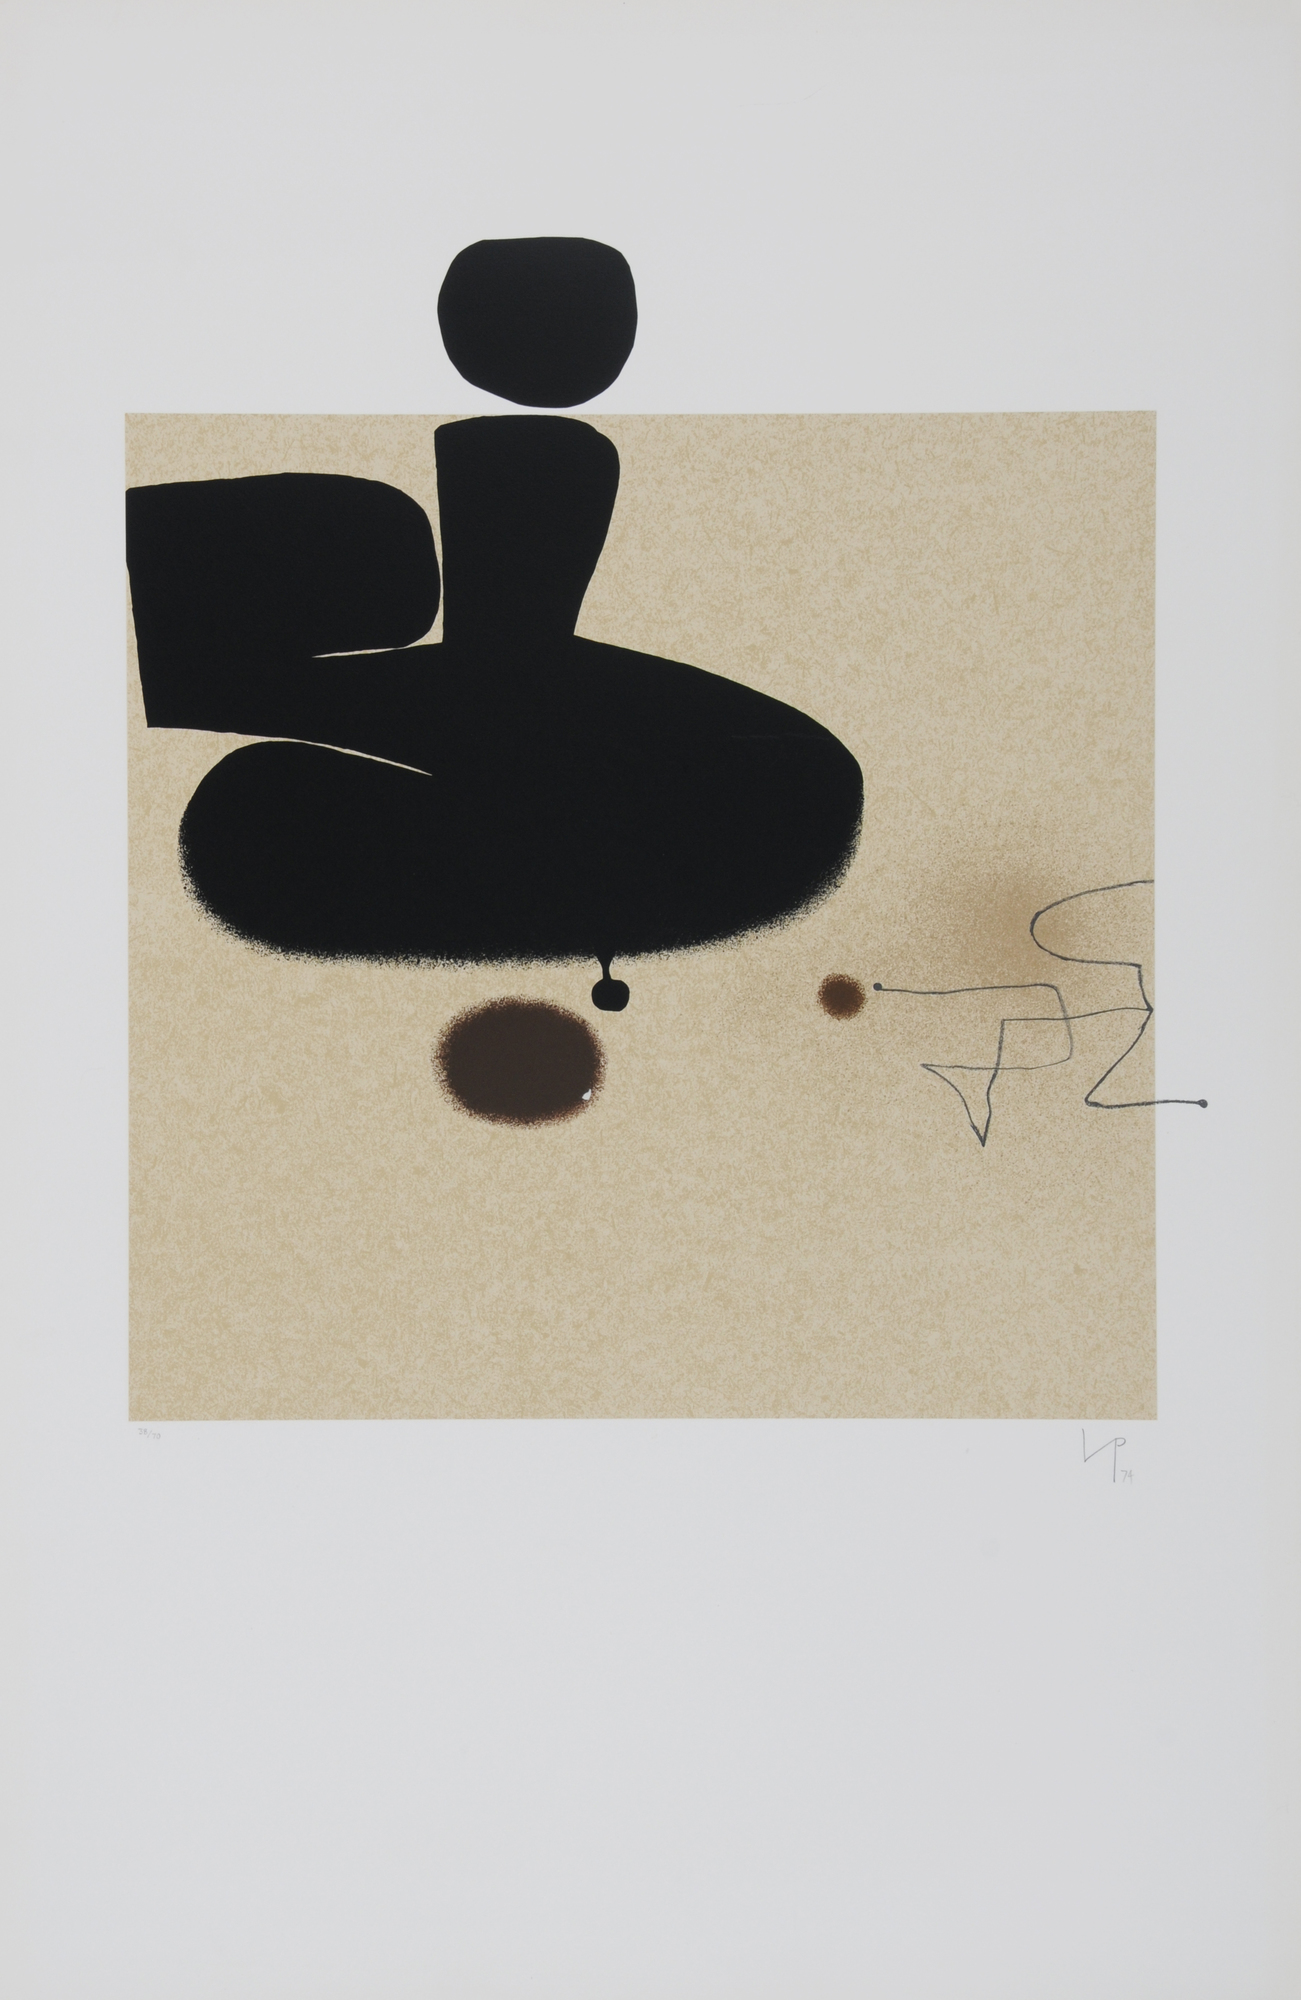 """Pasmore Victor, Blatt aus """"Points of Contact No. 26"""""""